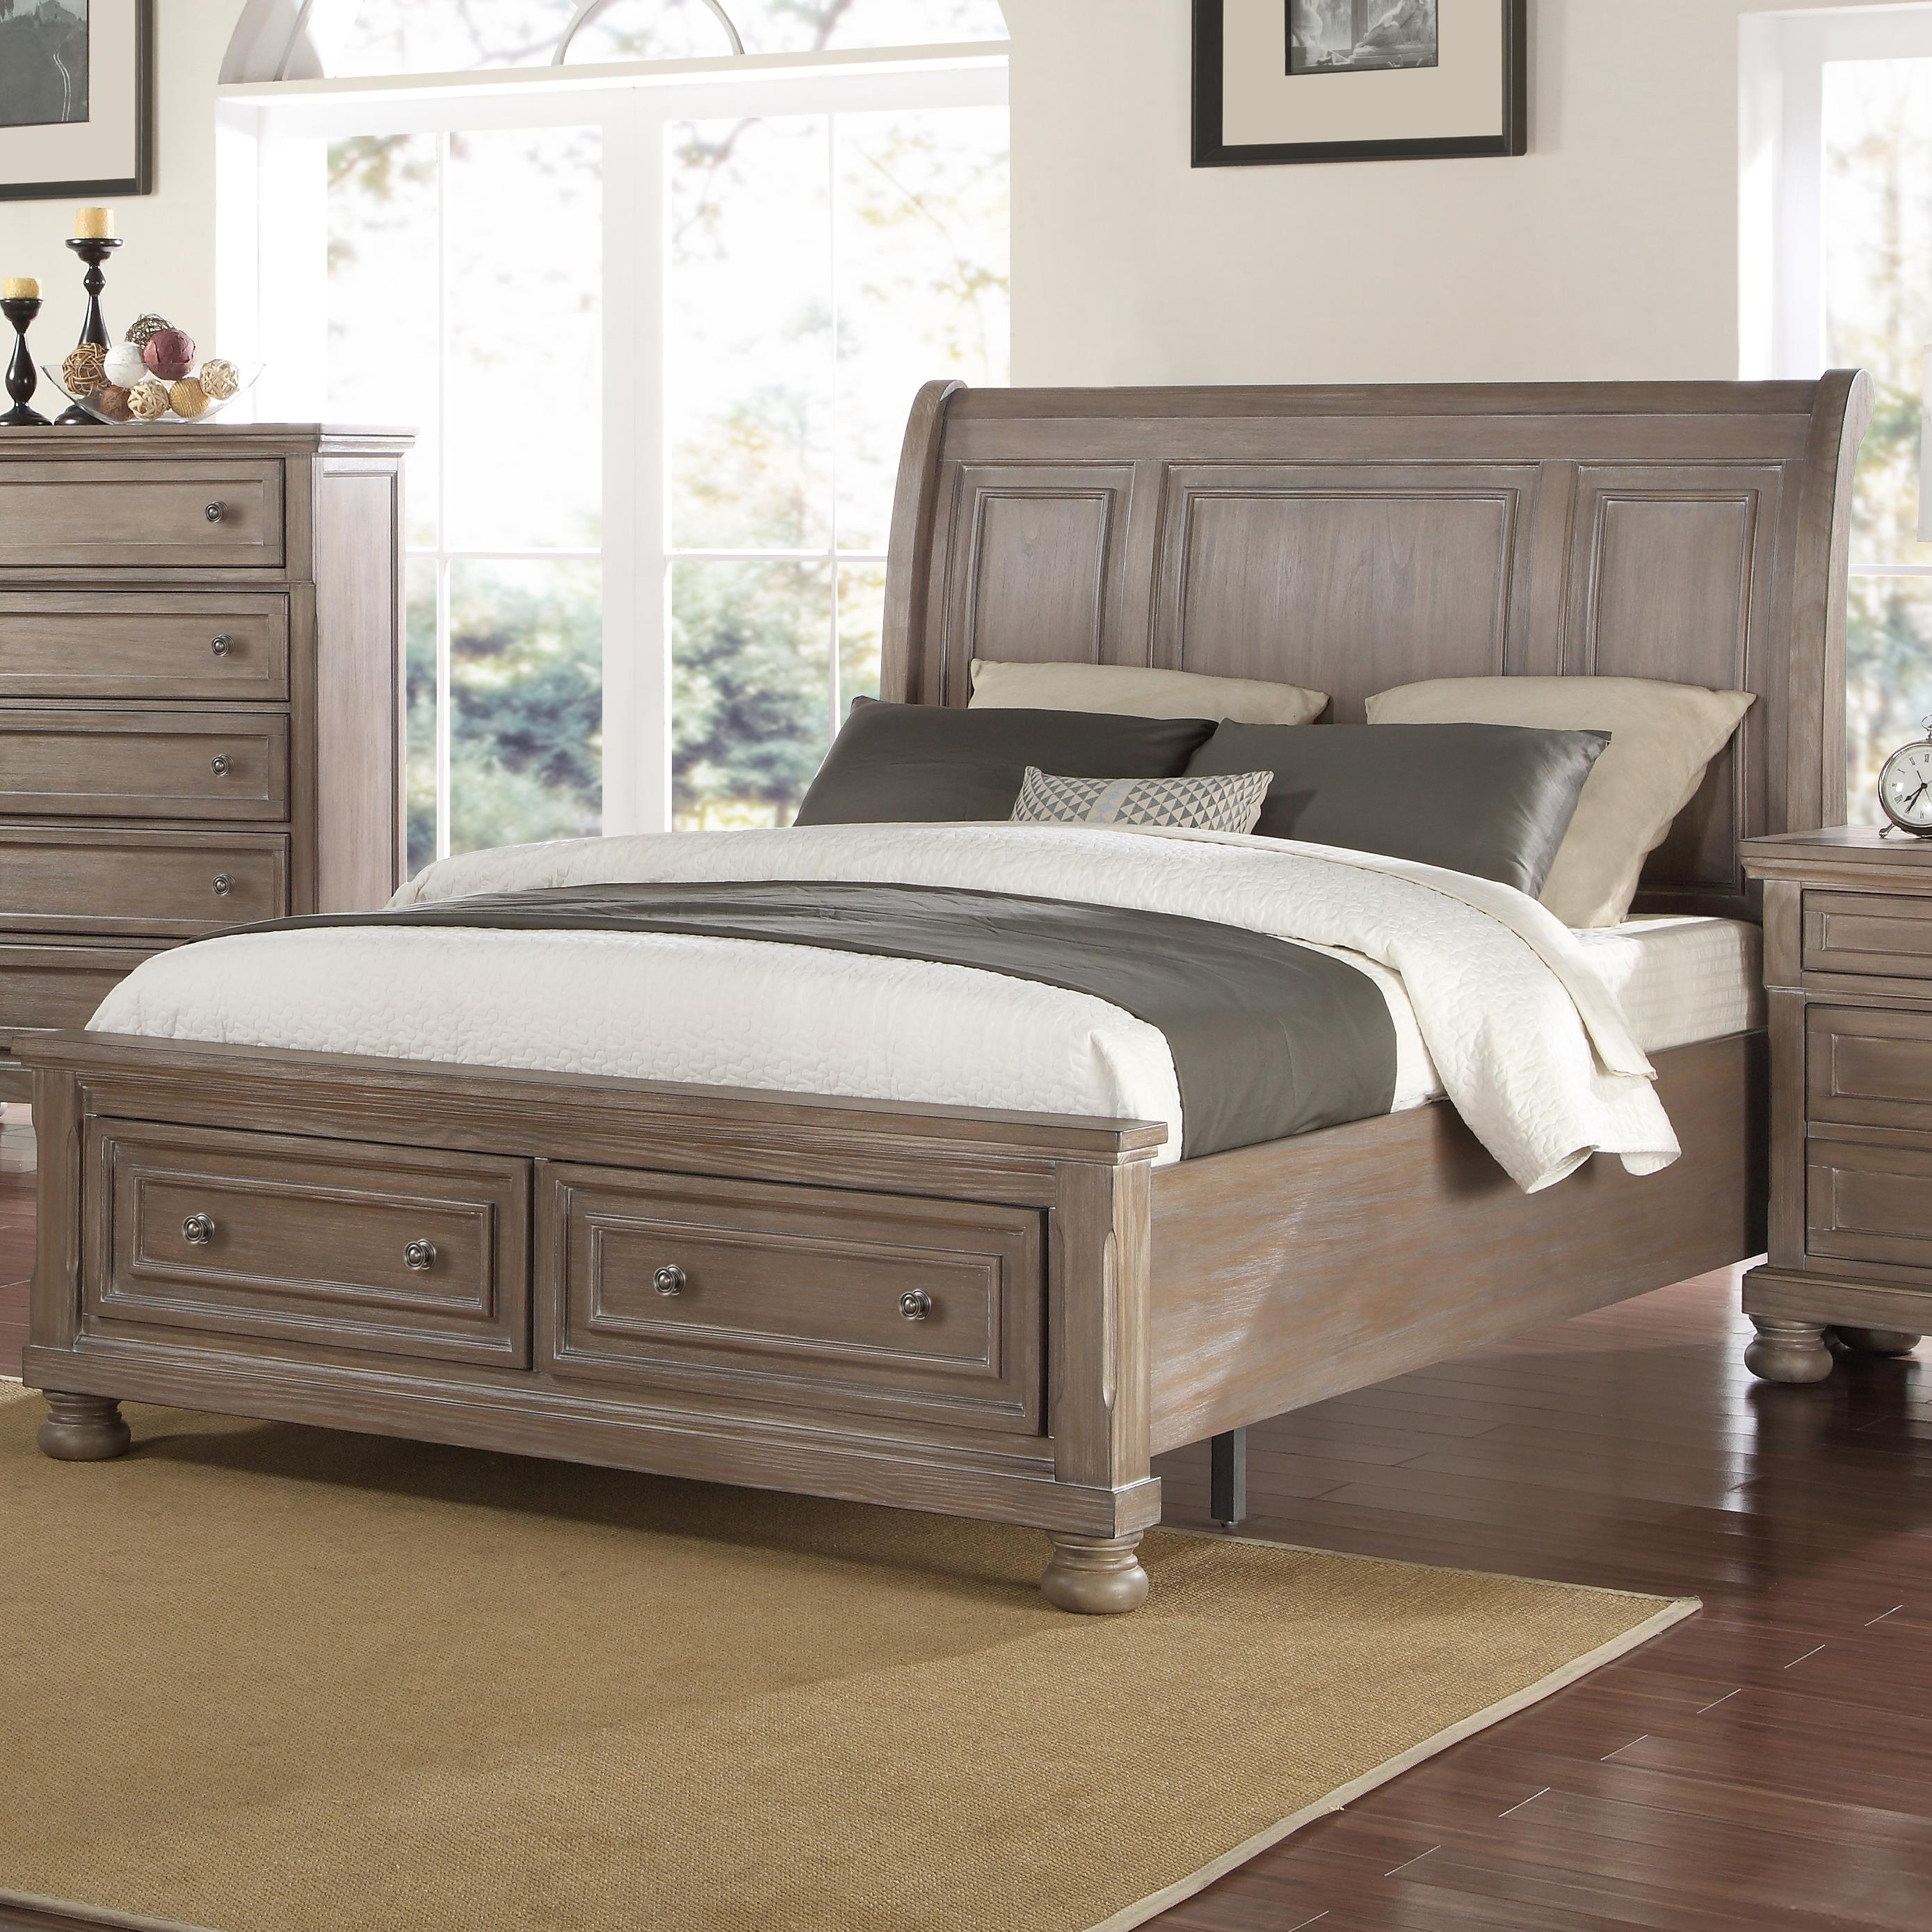 Bed Low Profile New Classic Allegra Queen Low Profile Bed With Footboard